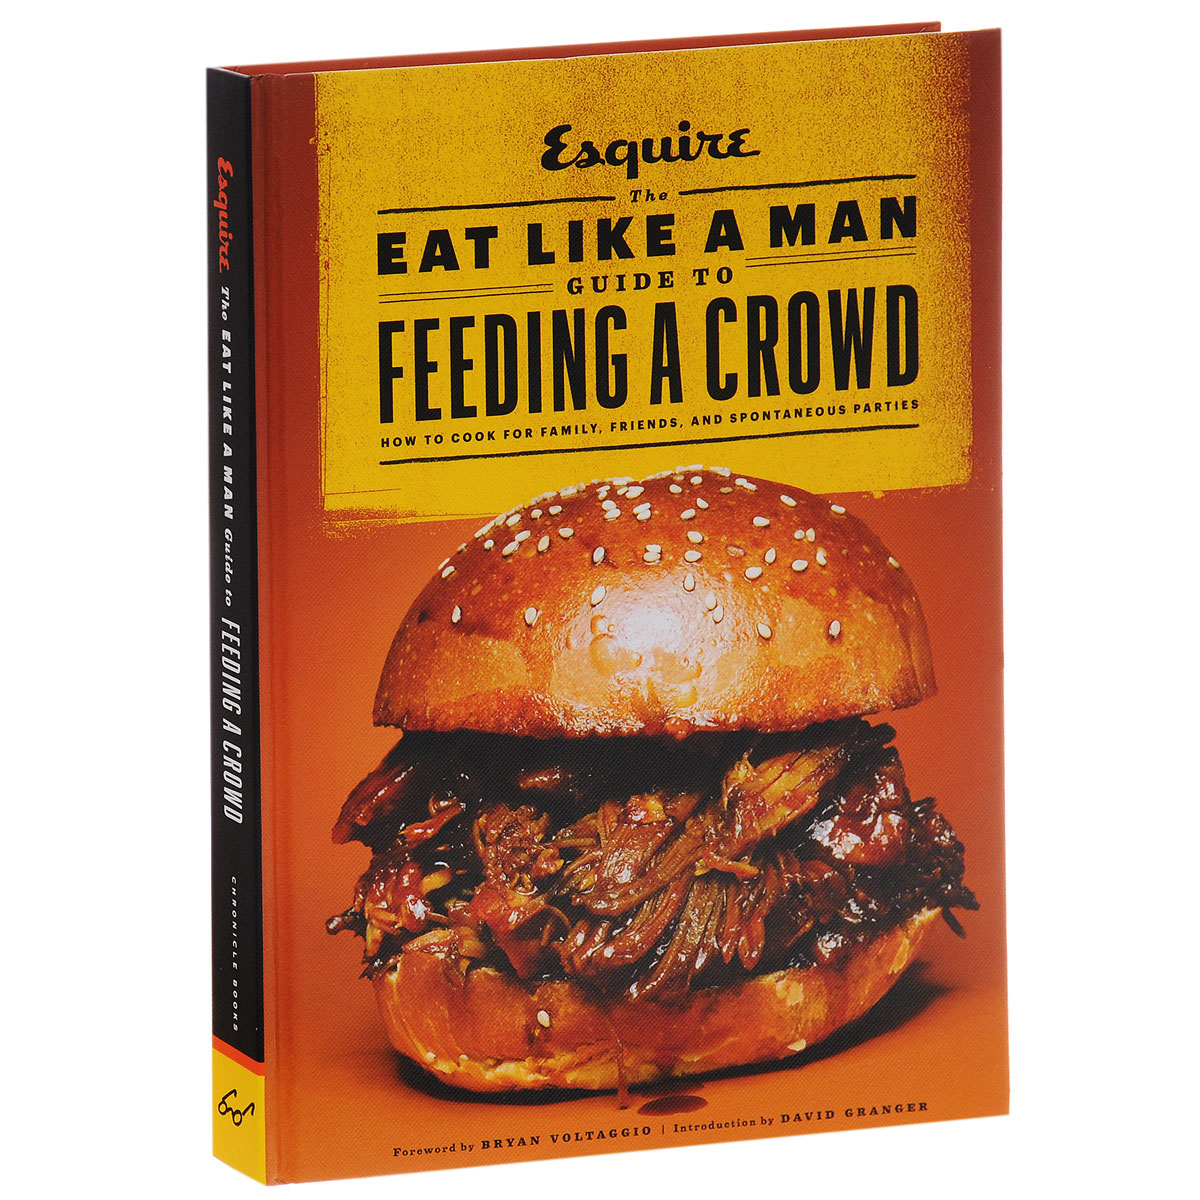 The Eat Like a Man Guide to Feeding a Crowd: How to Cook for Family, Friends, and Spontaneous Parties amelia renkert thomas engaged ownership a guide for owners of family businesses